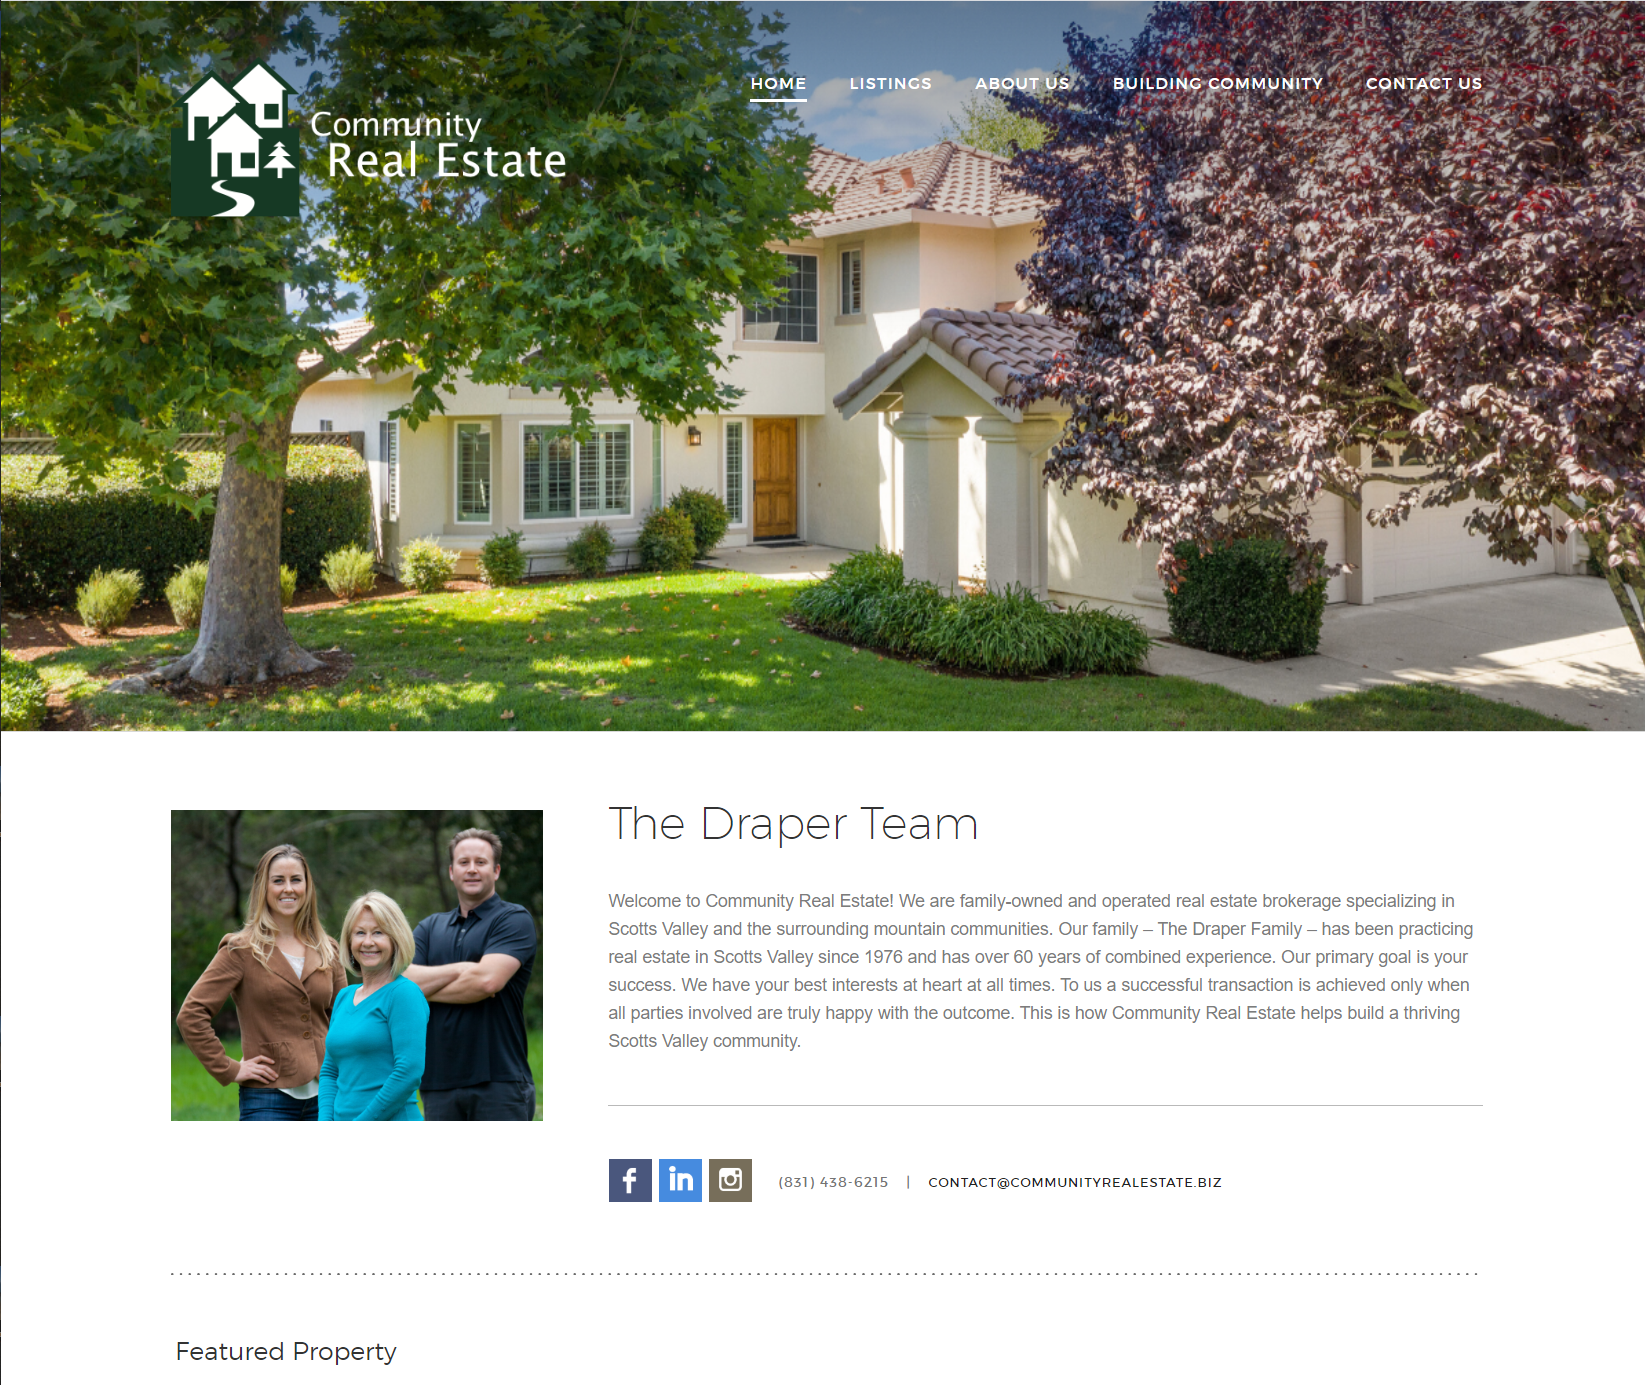 WordPress Website Redesign for Community Real Estate Website